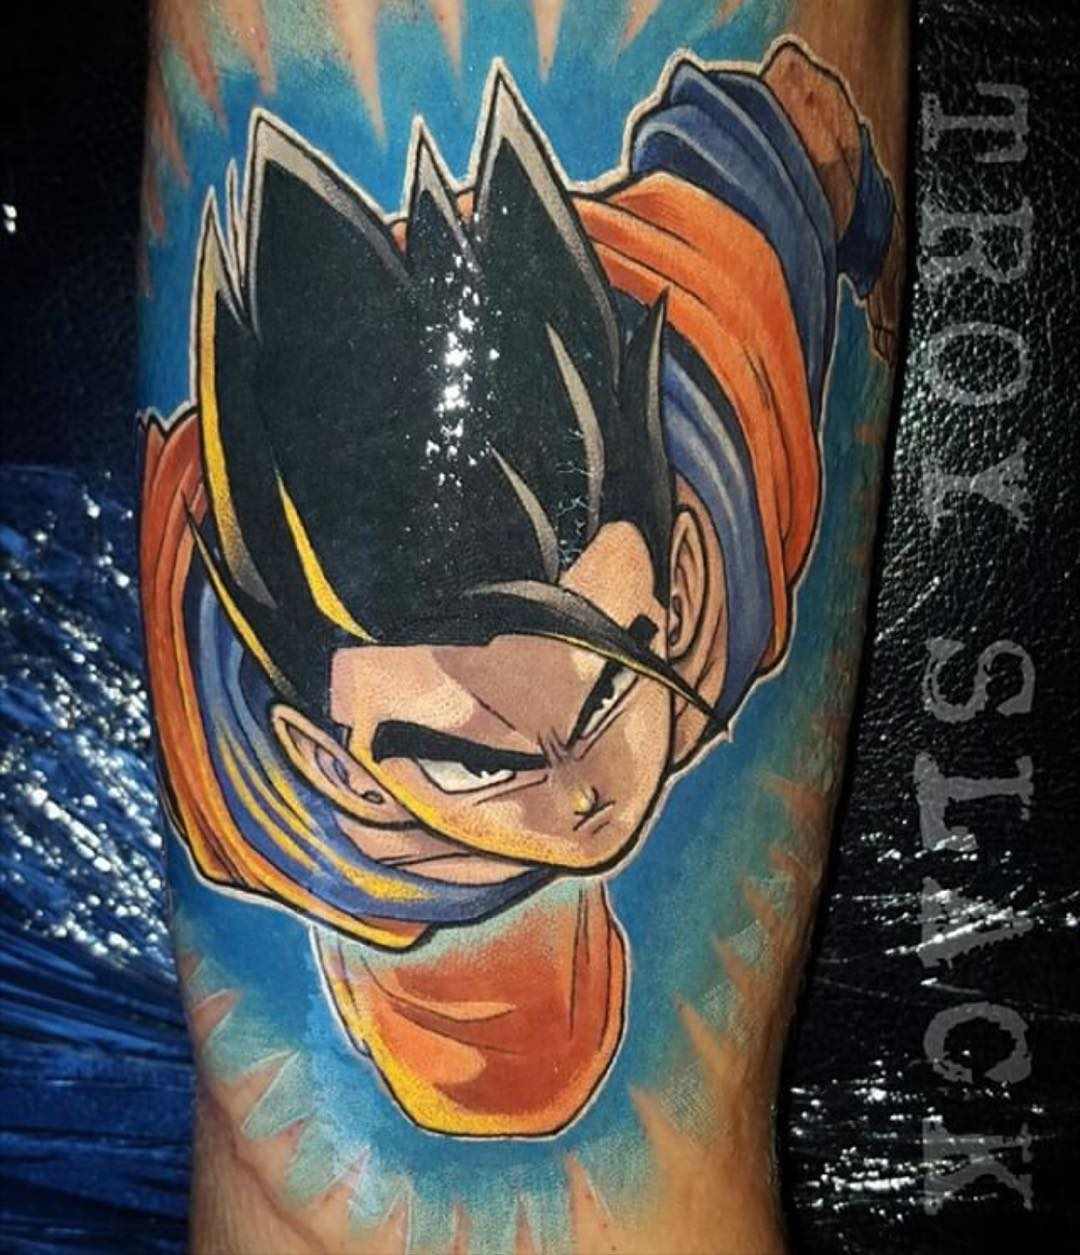 the tattoo of the Dragon Ball Z main character